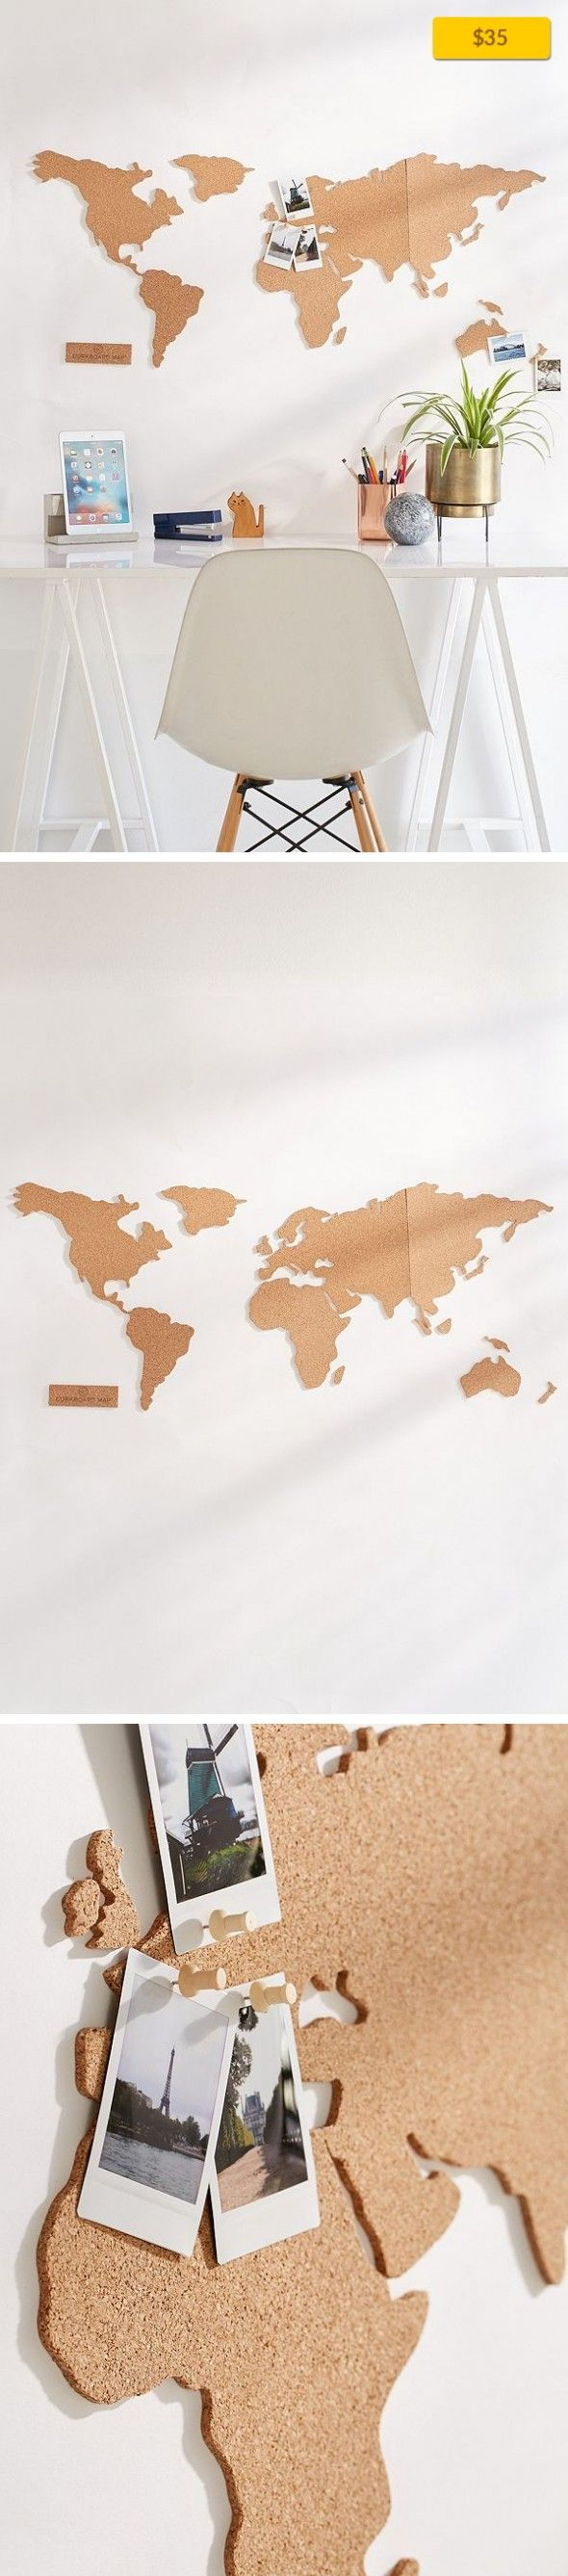 The 25 best cork world map ideas on pinterest cork map cork cork board world map on campus desk storage self adhesive world map cork board with 16 push pins for adding photos postcards tickets more gumiabroncs Choice Image